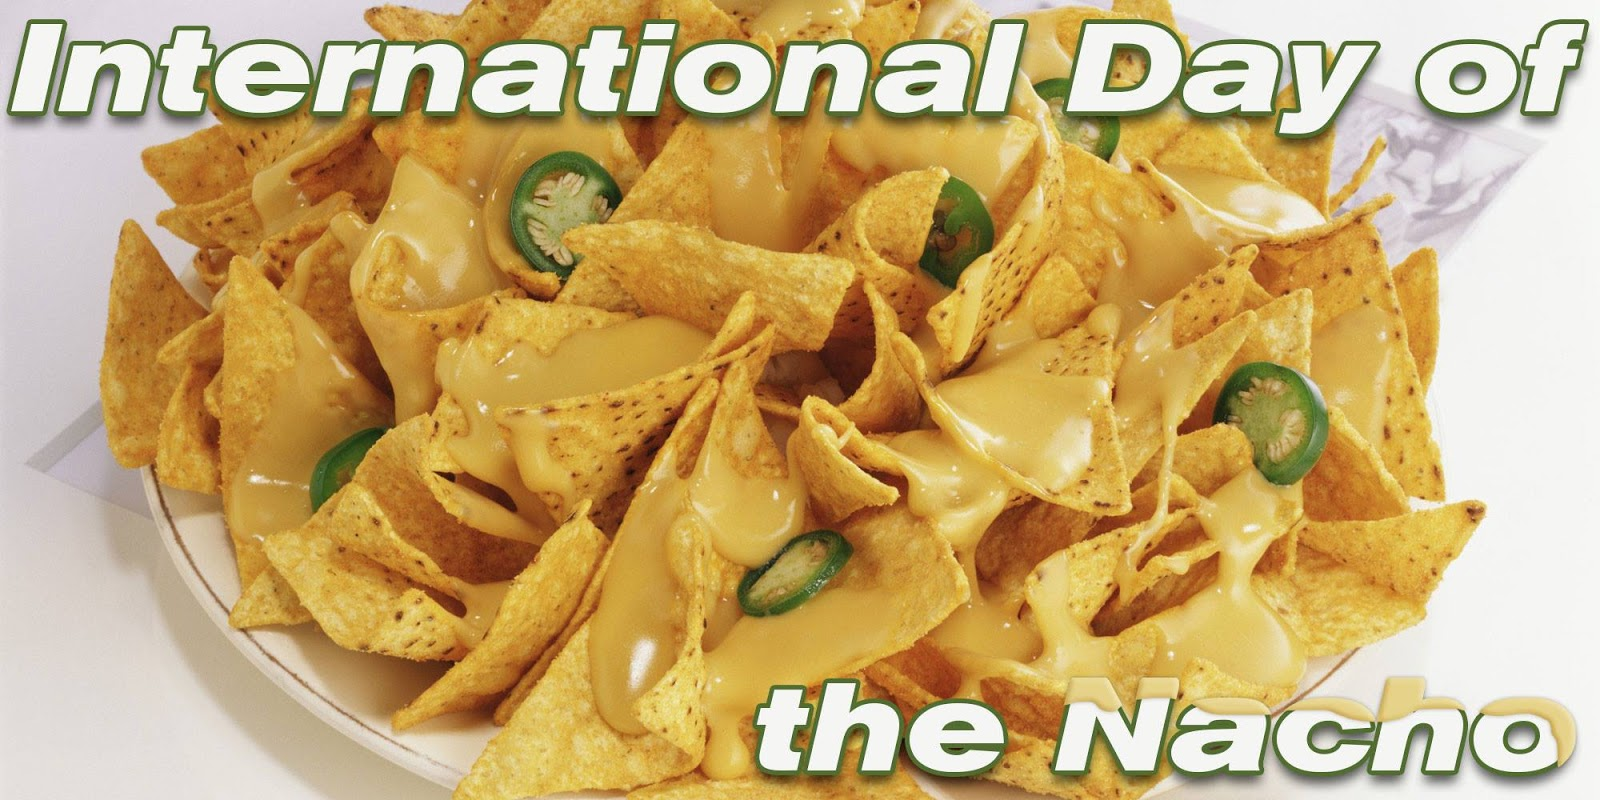 International Day of the Nacho Wishes